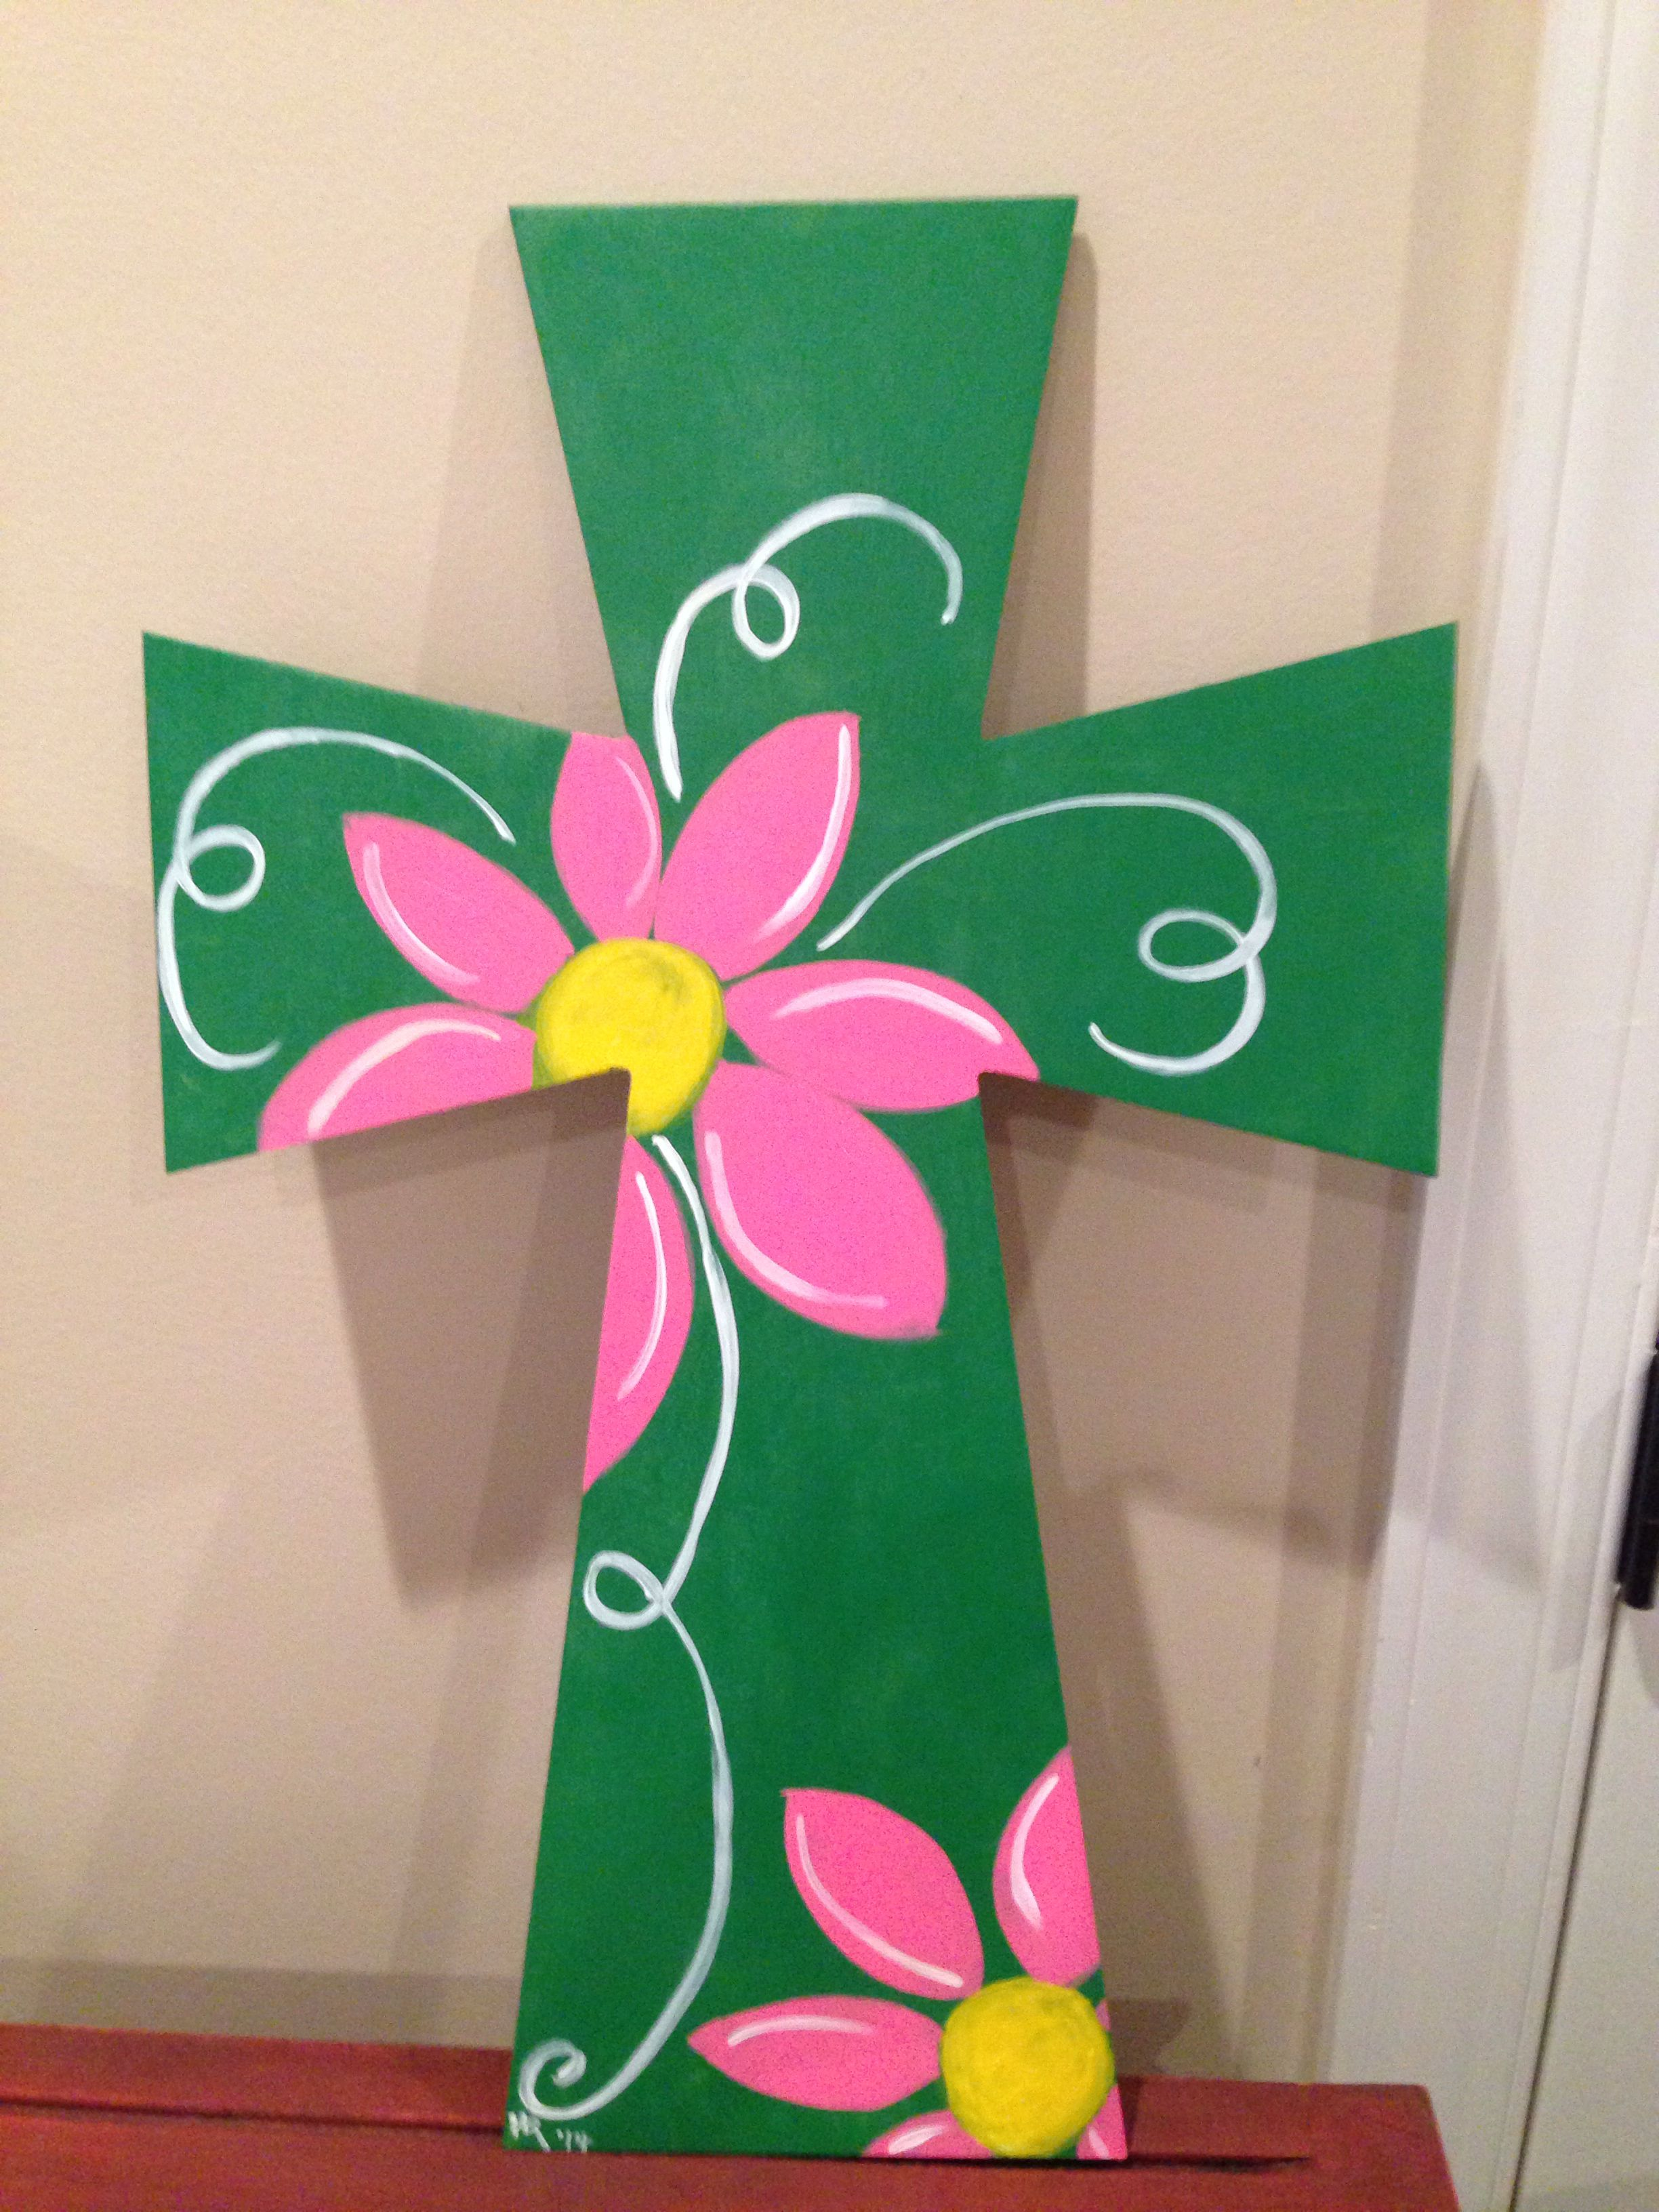 Painted wooden shapes for crafts - Hand Painted Wooden Cross Green W Large Pink Flowers